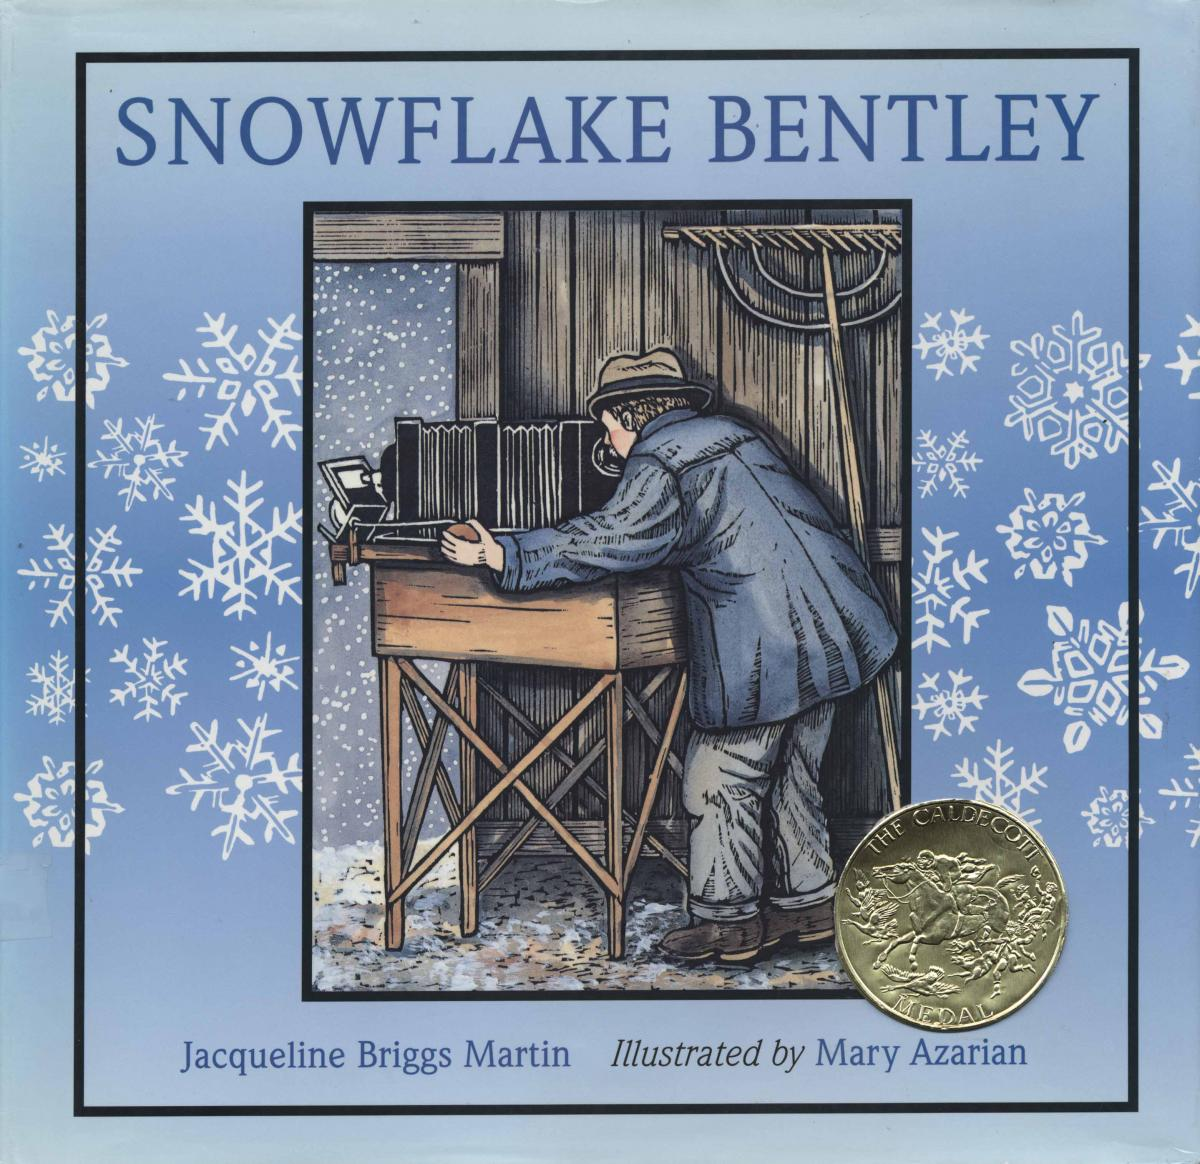 Snowflake Bentley, 1999 Caldecott Medal Winner